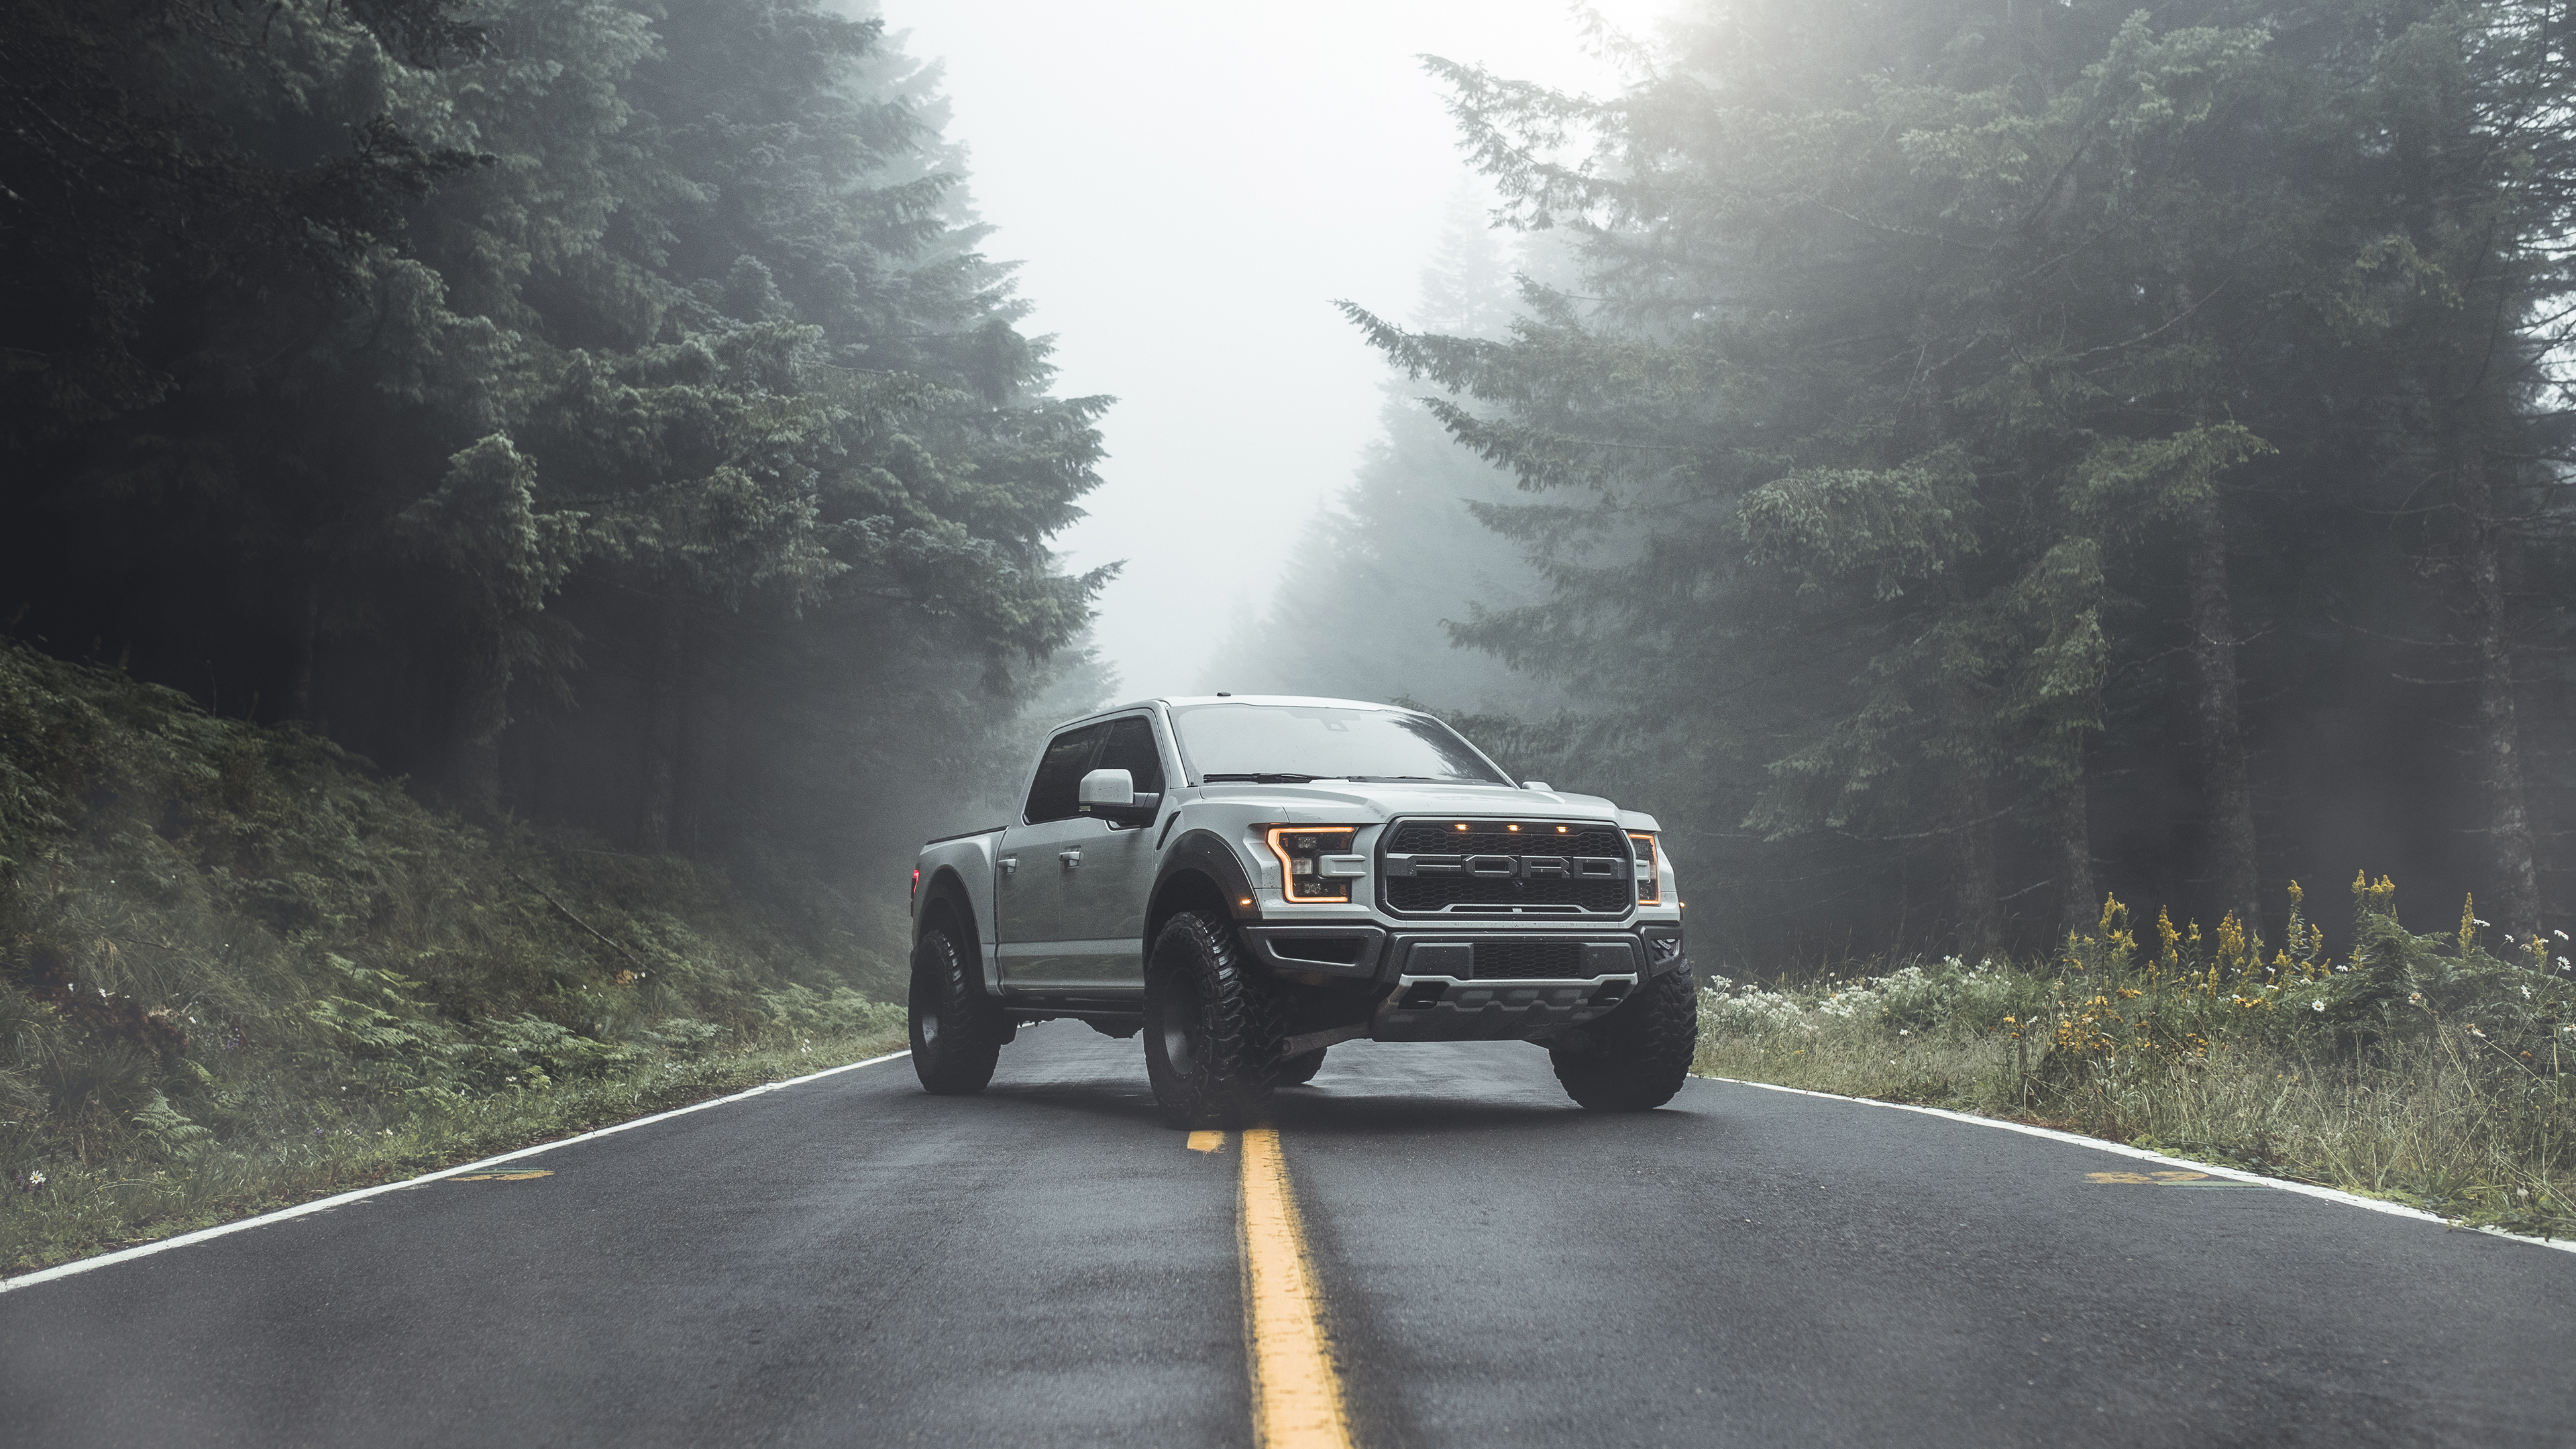 ford raptor 2019 1569189430 - Ford Raptor 2019 - truck wallpapers, hd-wallpapers, ford wallpapers, ford raptor wallpapers, ford ranger raptor wallpapers, cars wallpapers, behance wallpapers, 4k-wallpapers, 2019 cars wallpapers